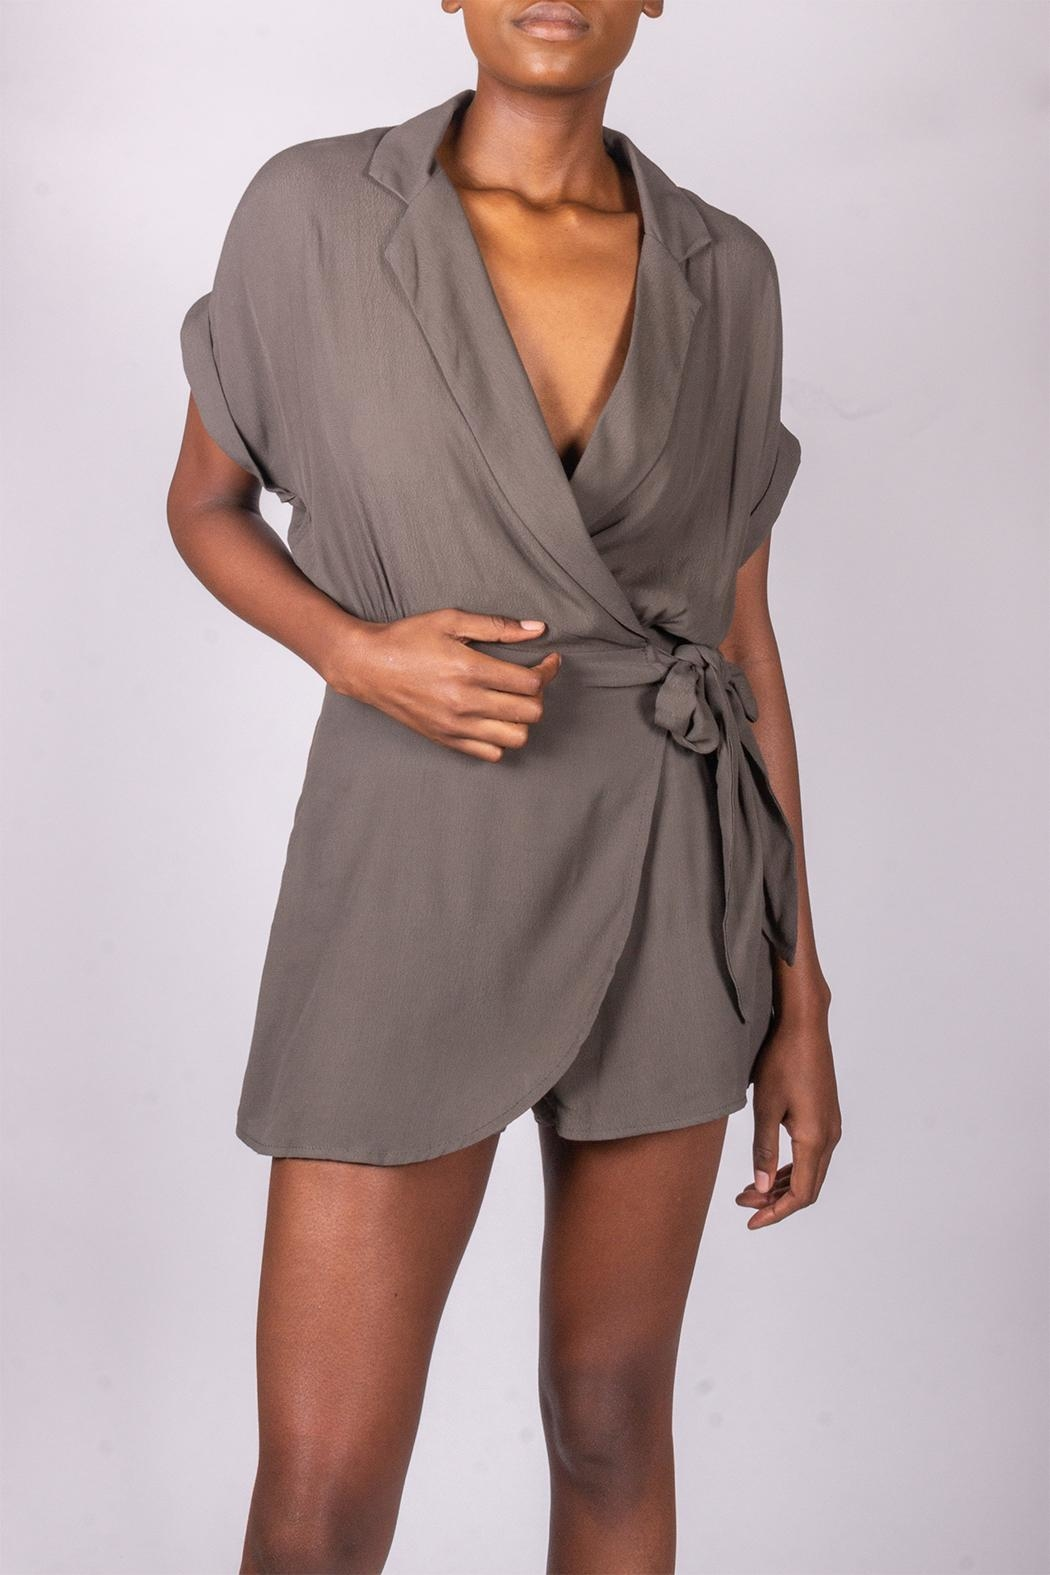 Final Touch Olive Tie-Front Romper - Main Image